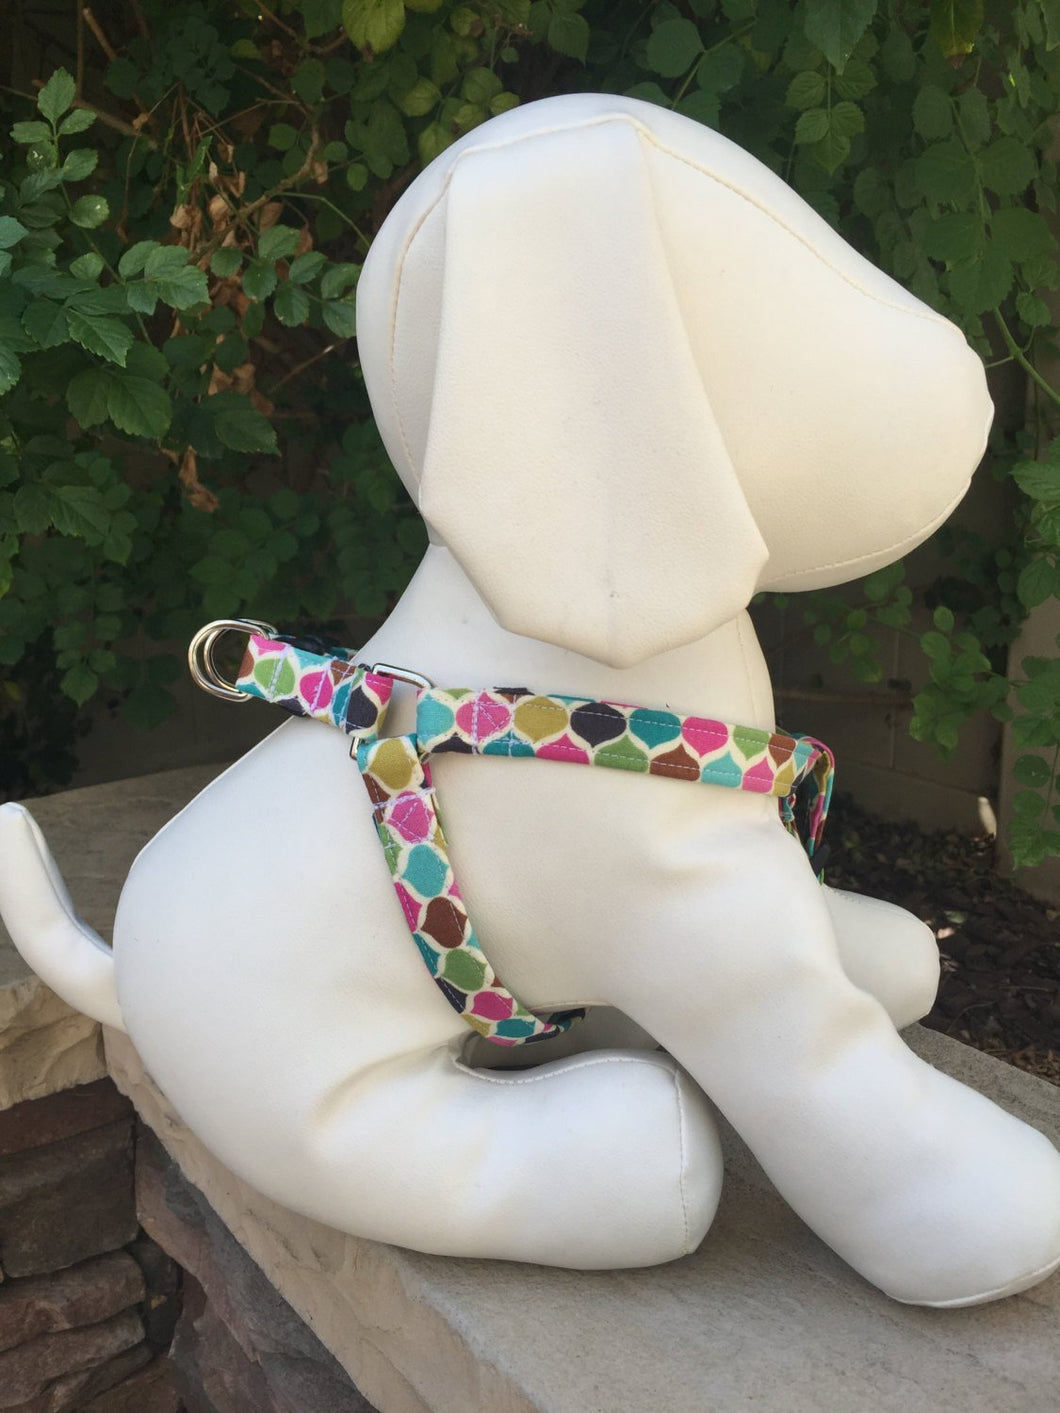 Step-In Harness - Your Choice of Fabric and Size - Collars by Design